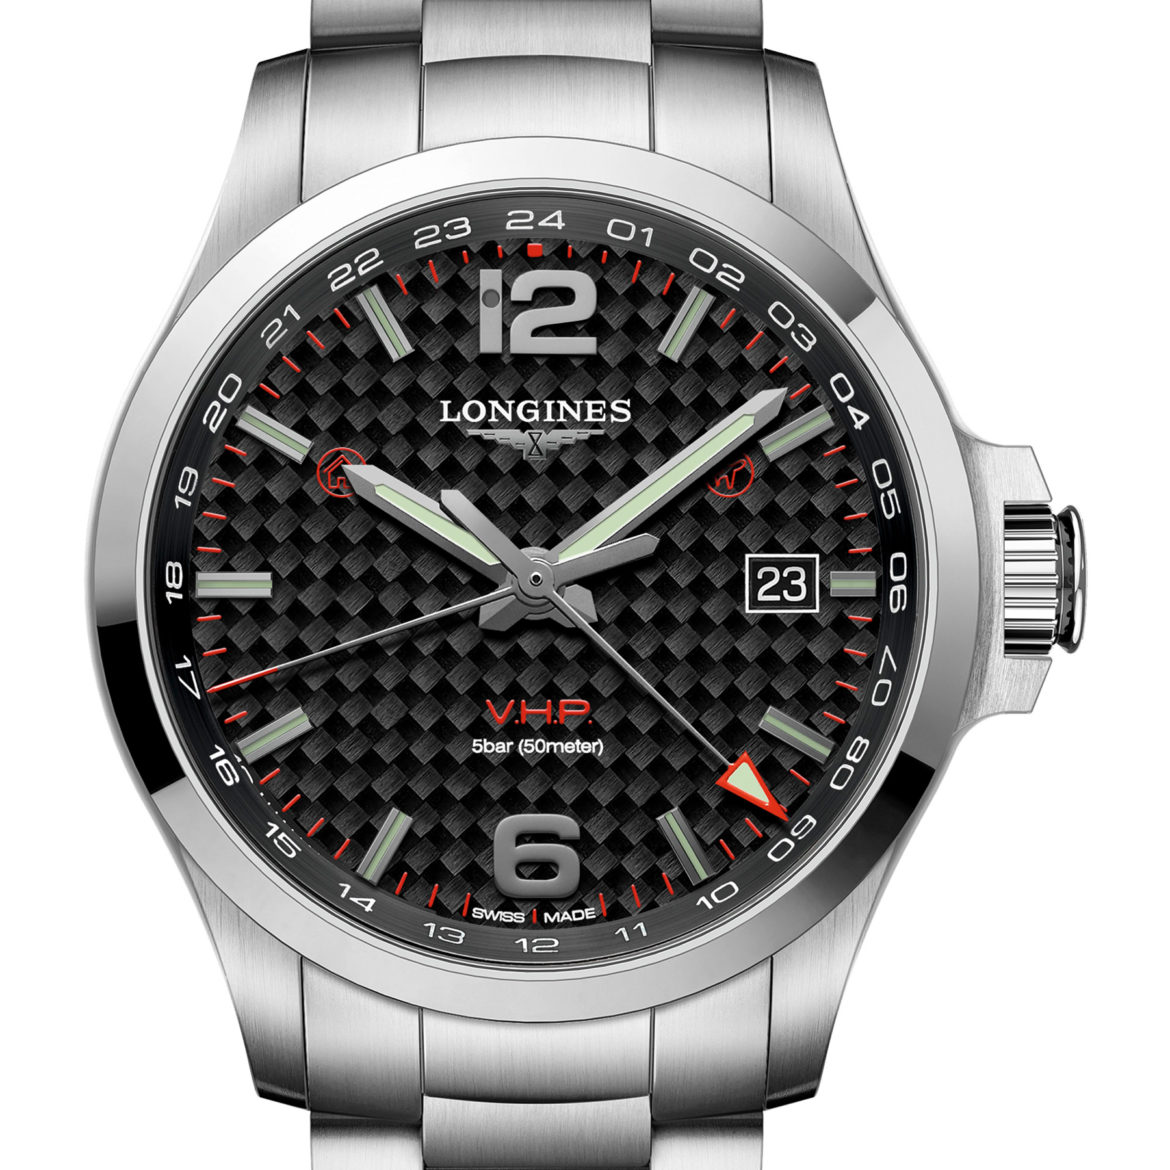 LONGINES</br/>Conquest VHP GMT </br/>L37284666